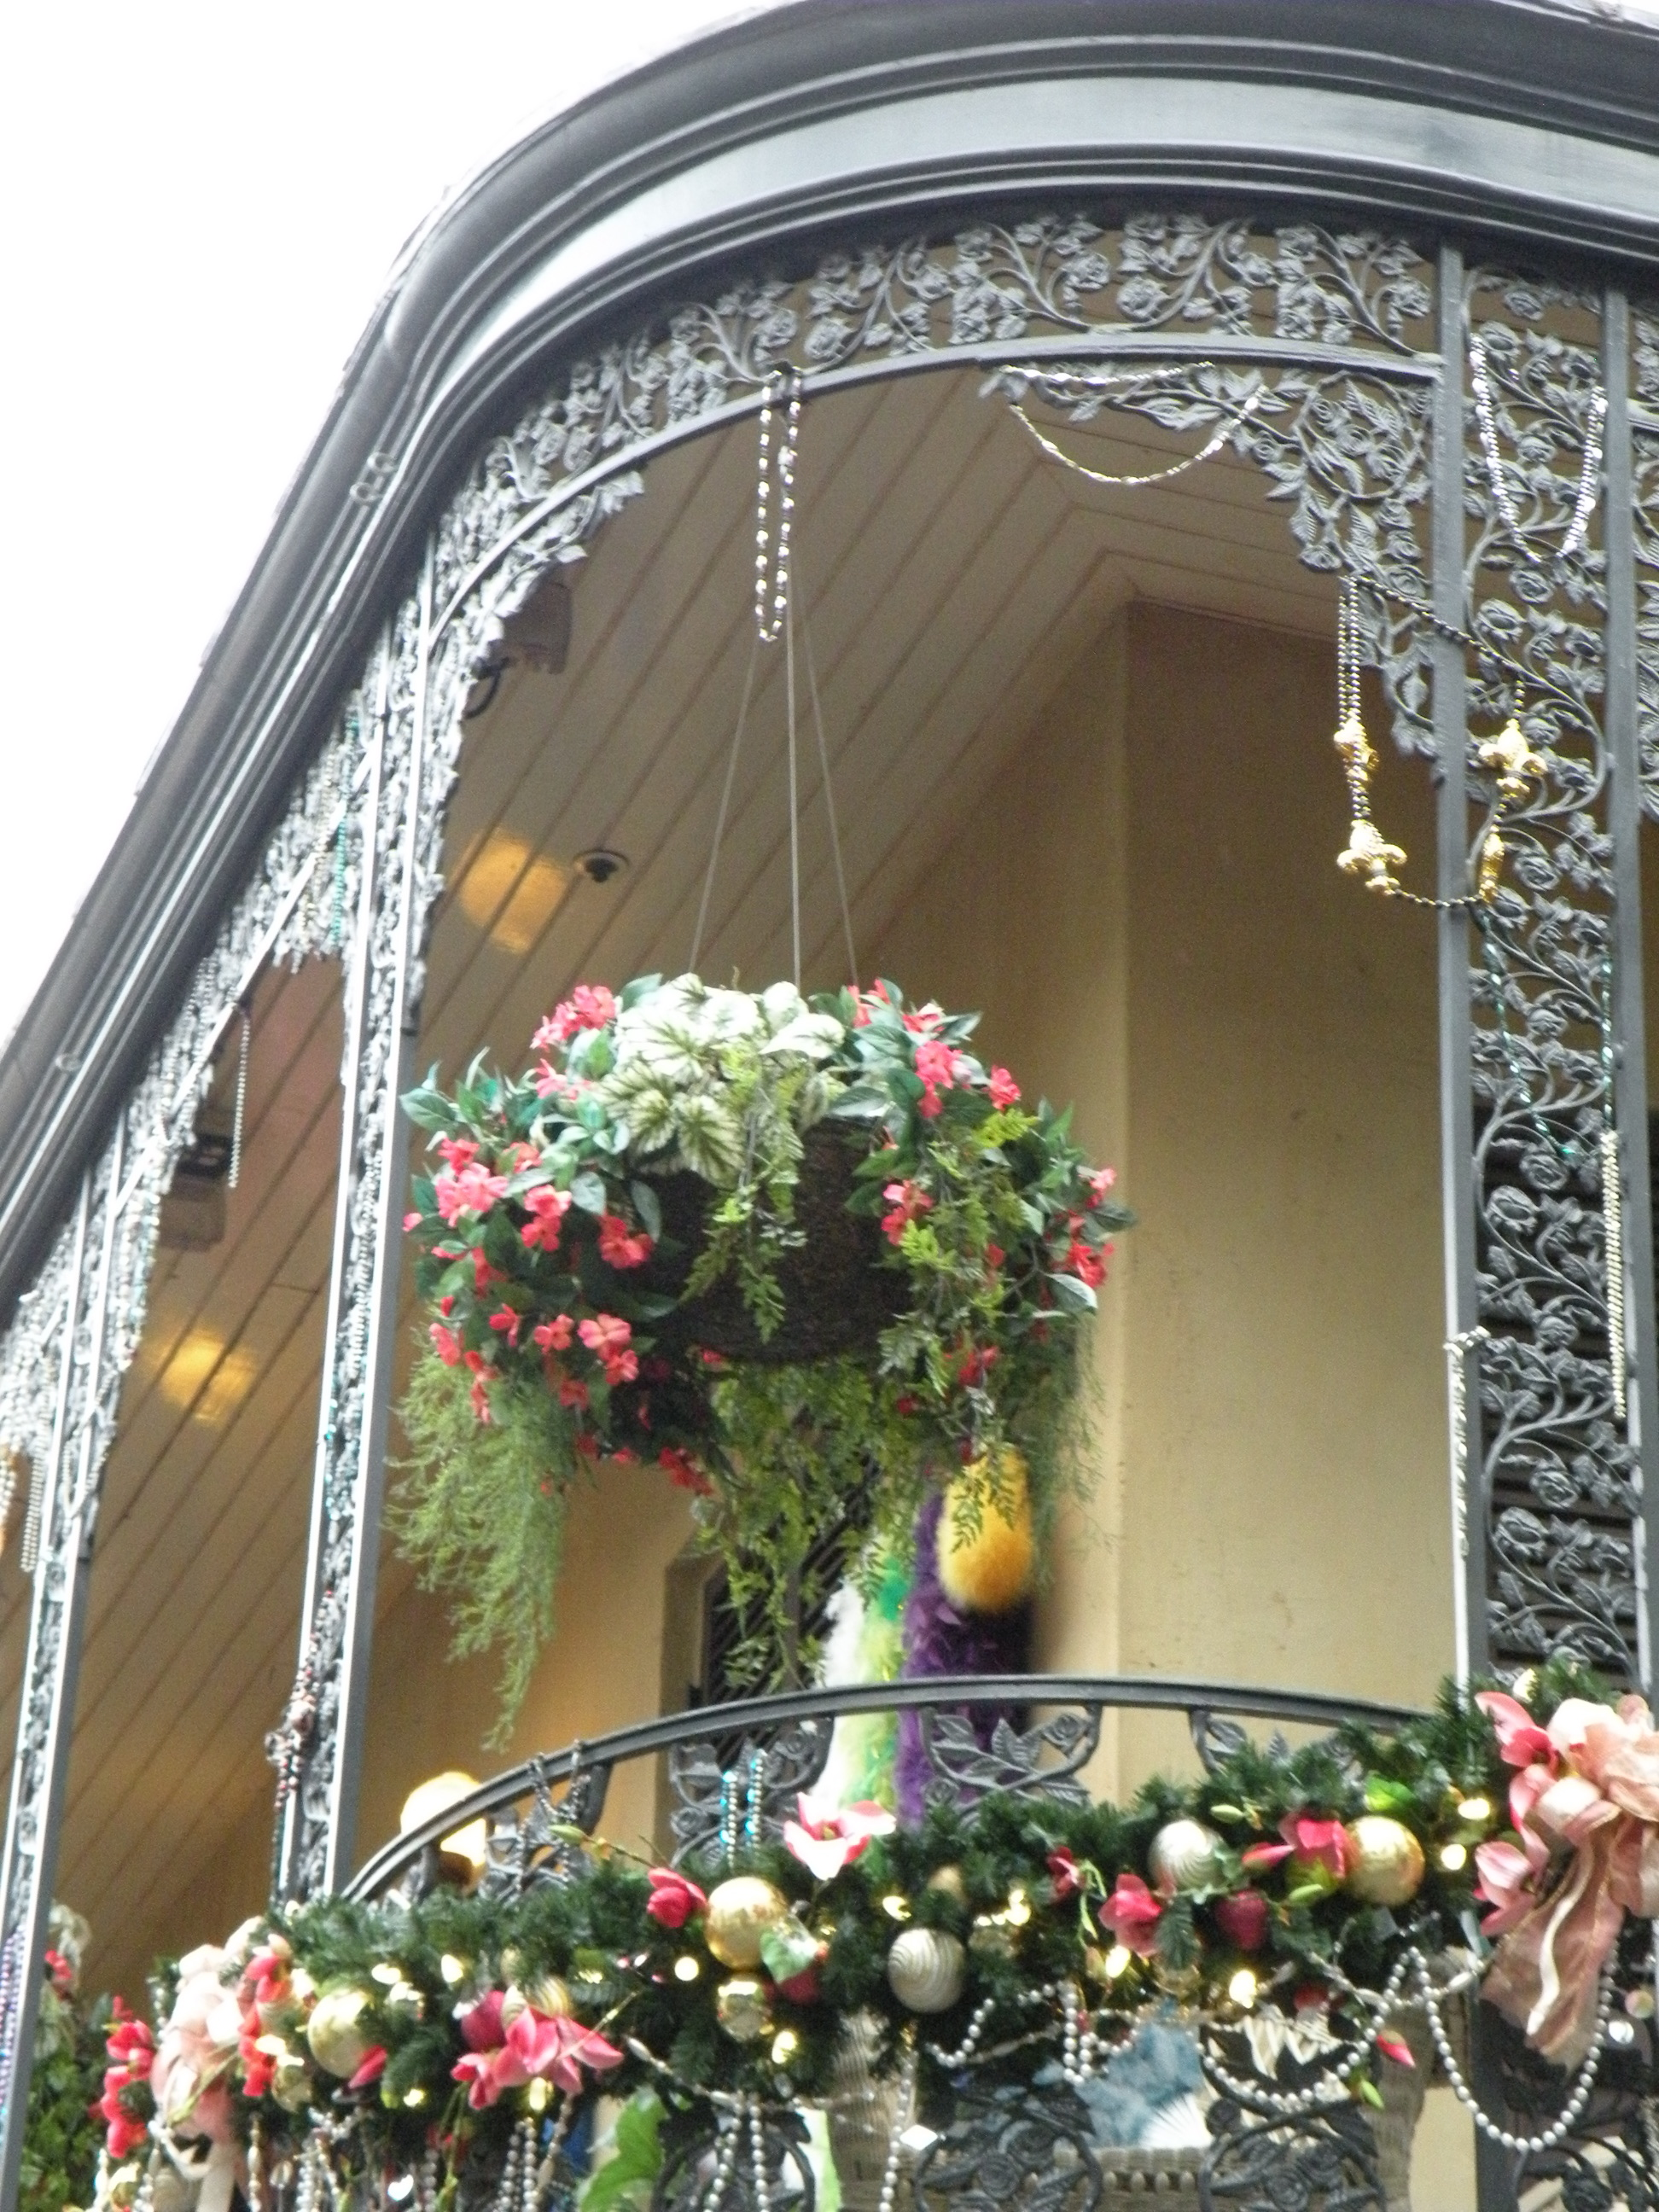 Decorations in New Orleans Square